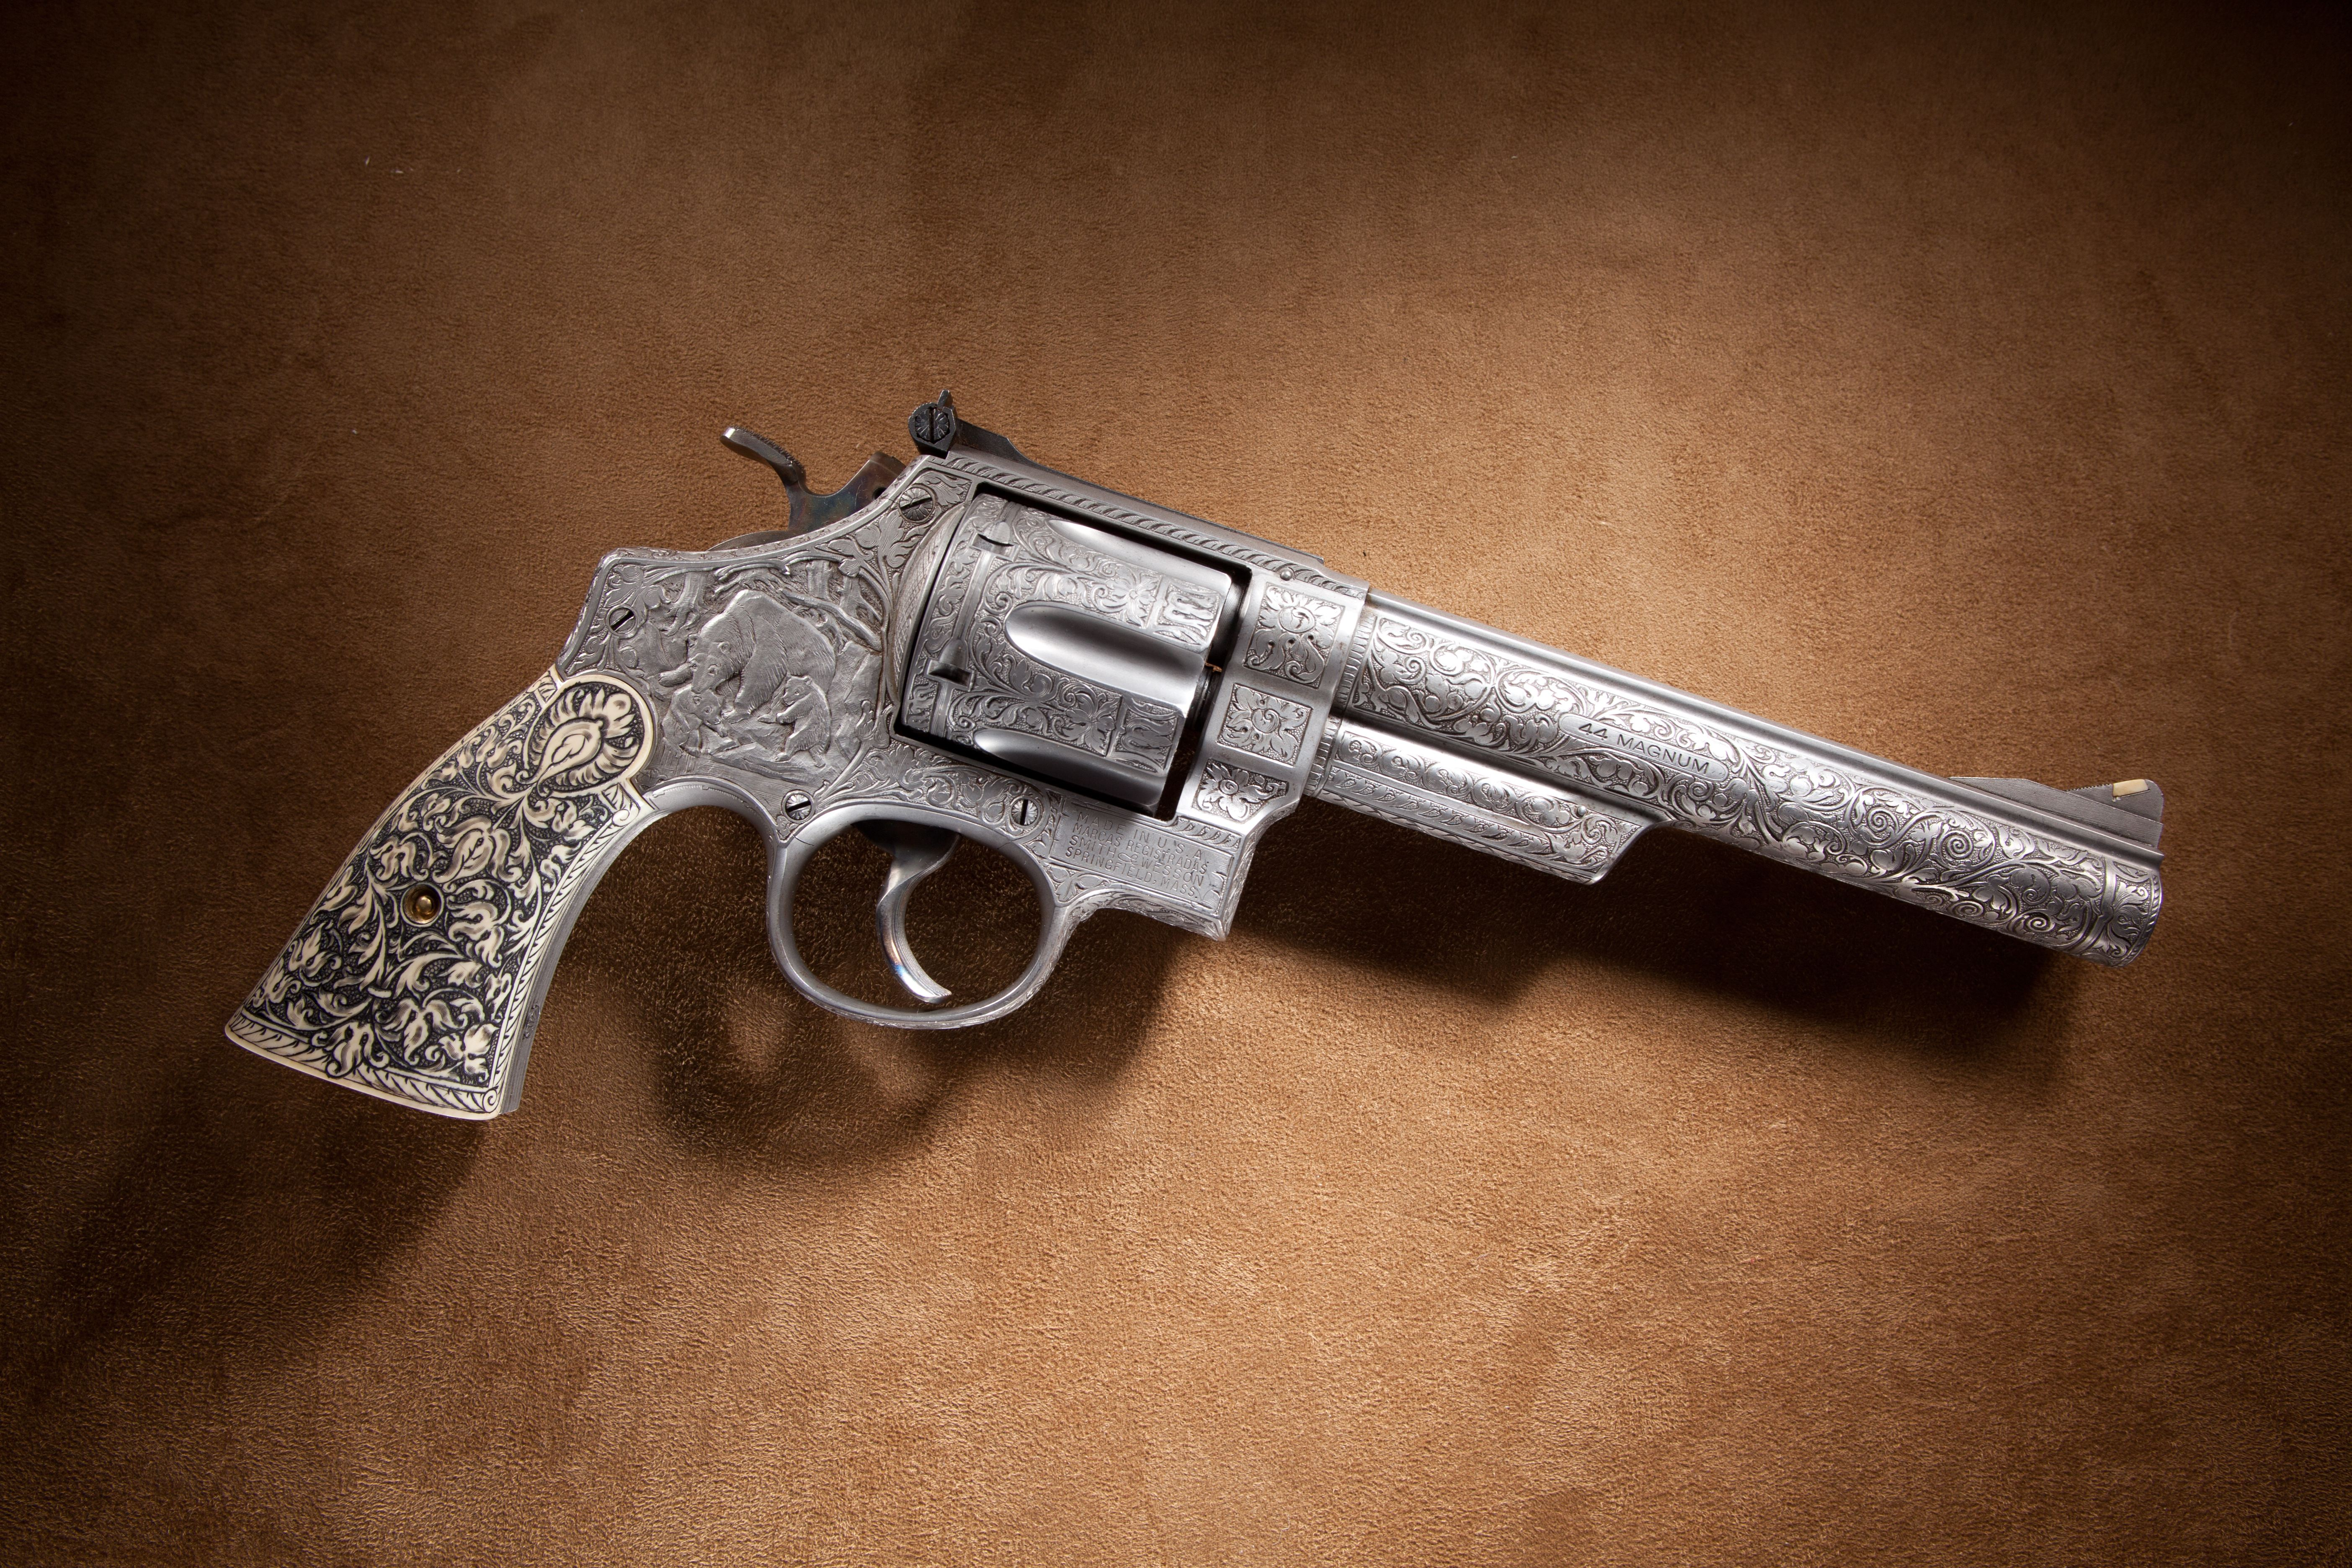 Smith & Wesson .44 Magnum